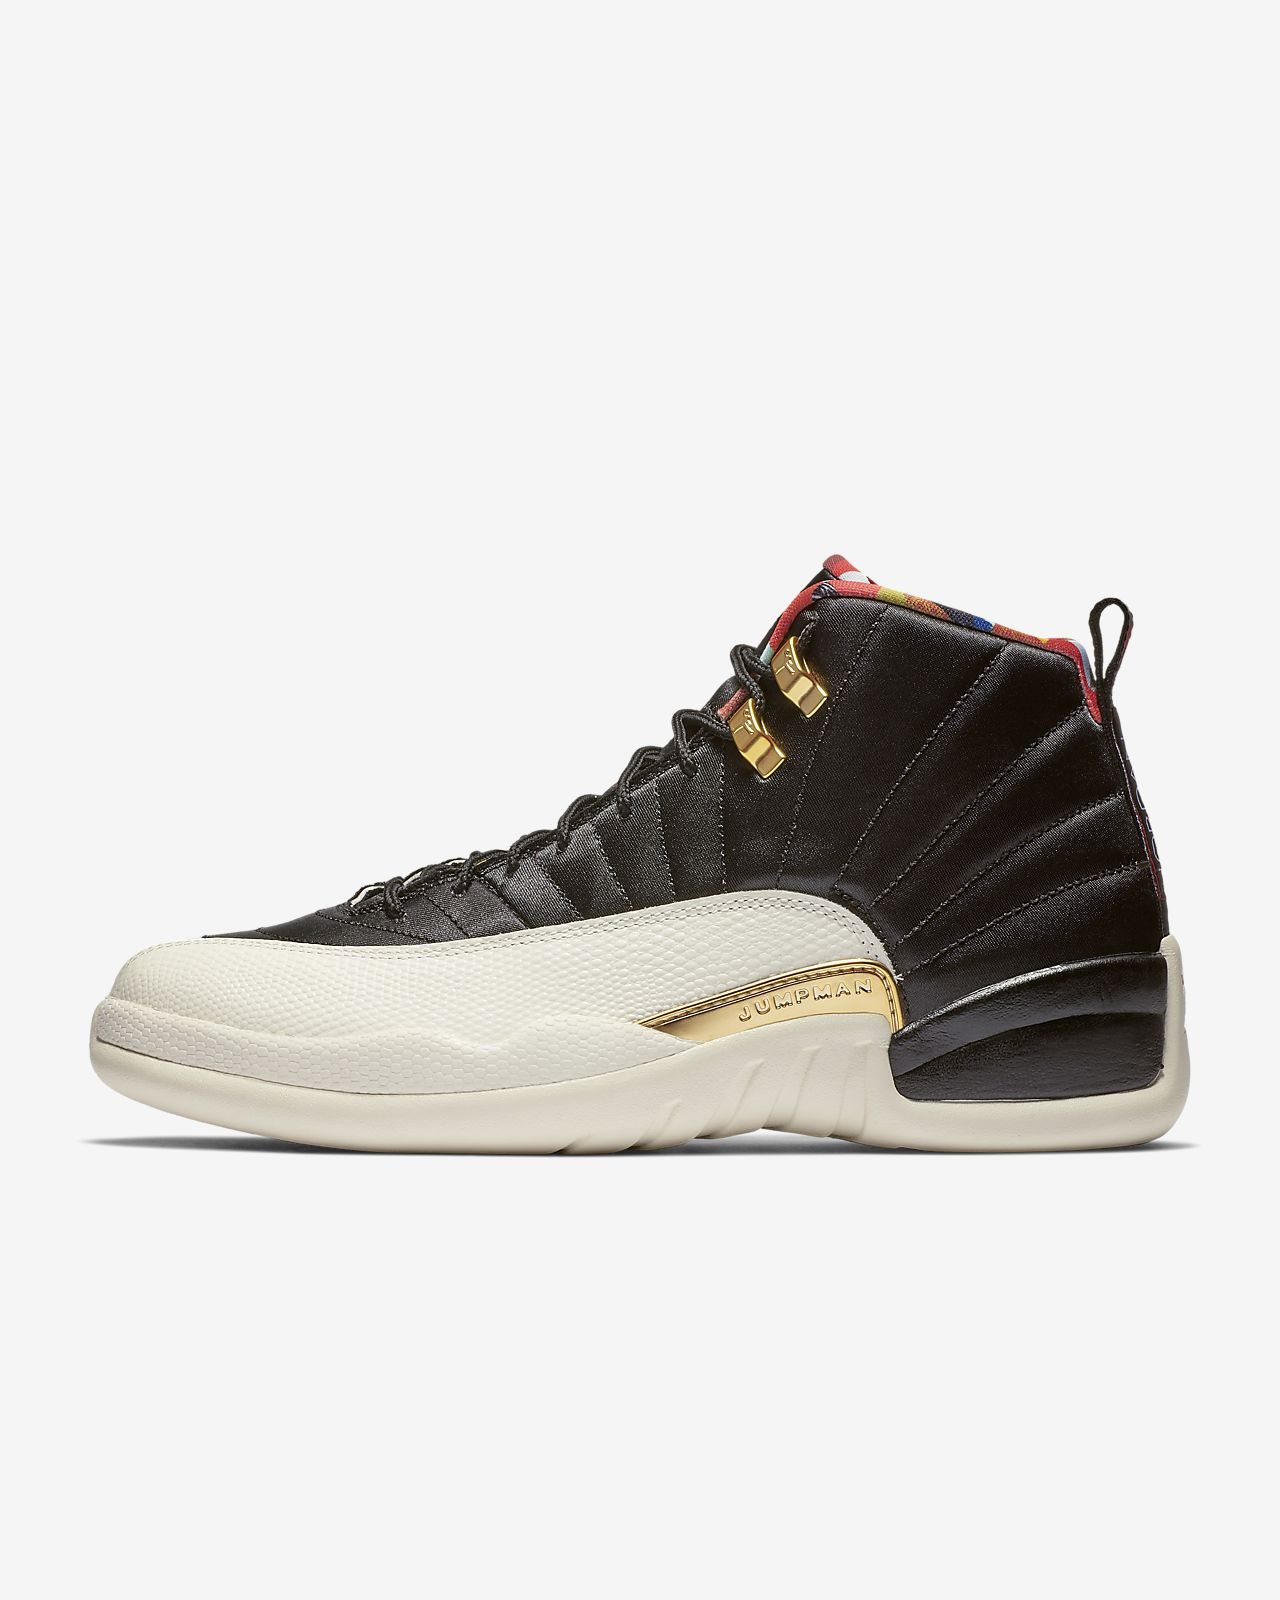 promo code 5ce5d bee3b ... Air Jordan 12 Retro CNY Men s Shoe